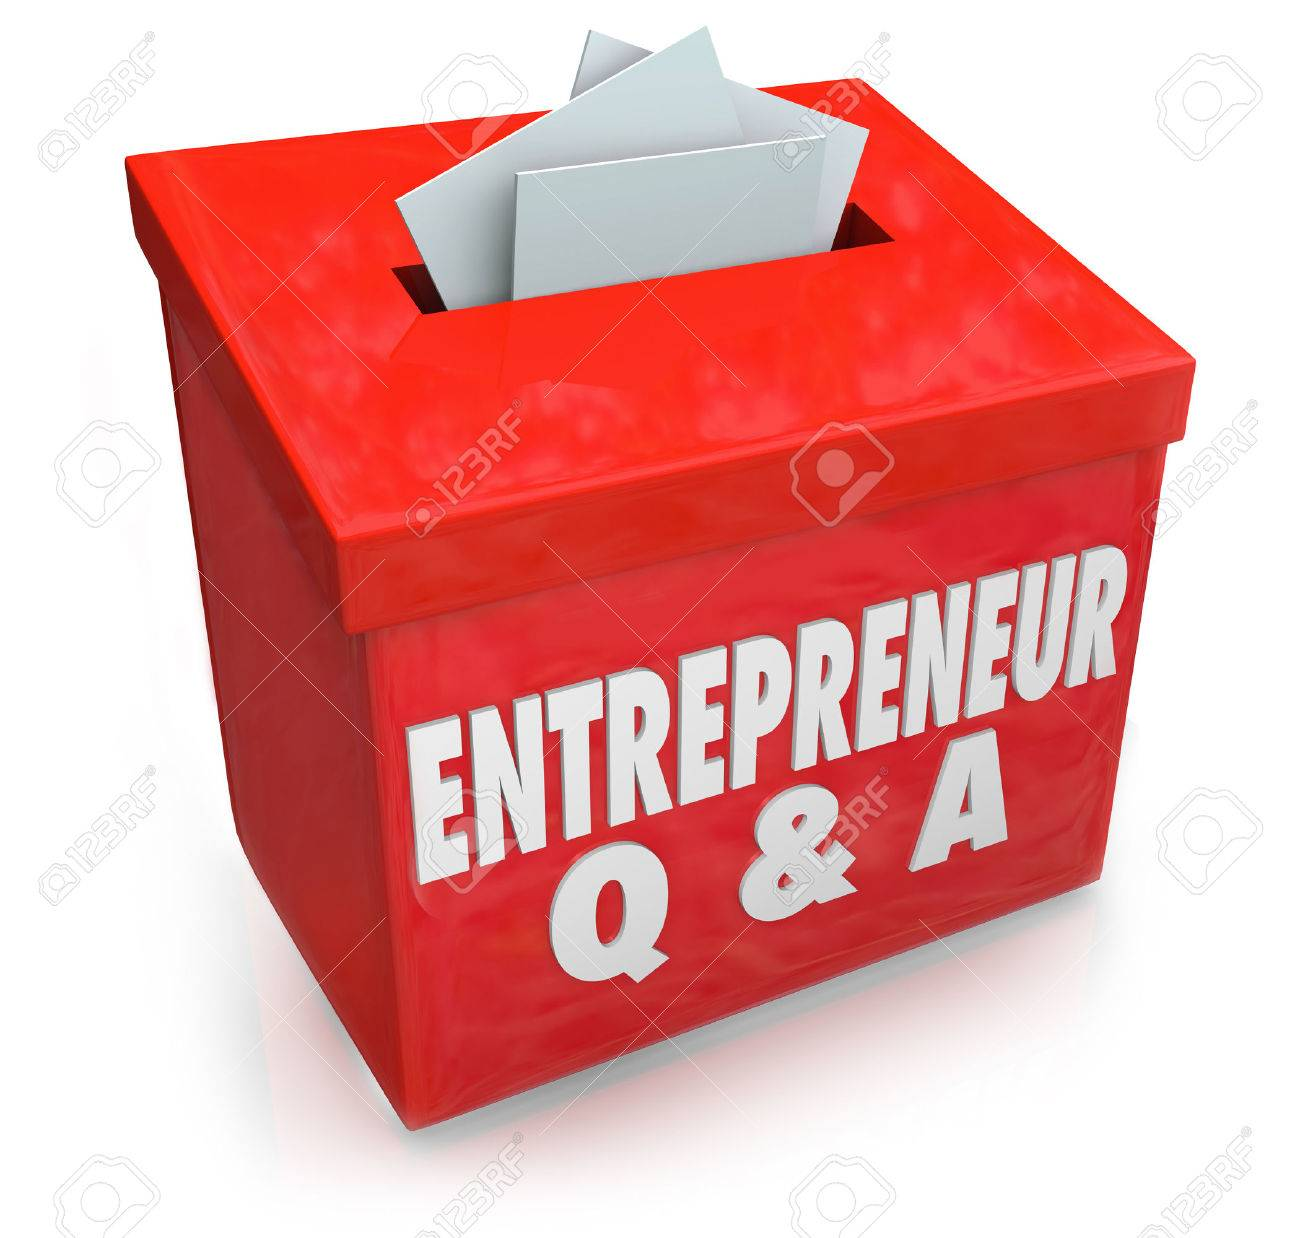 Image result for q box questions